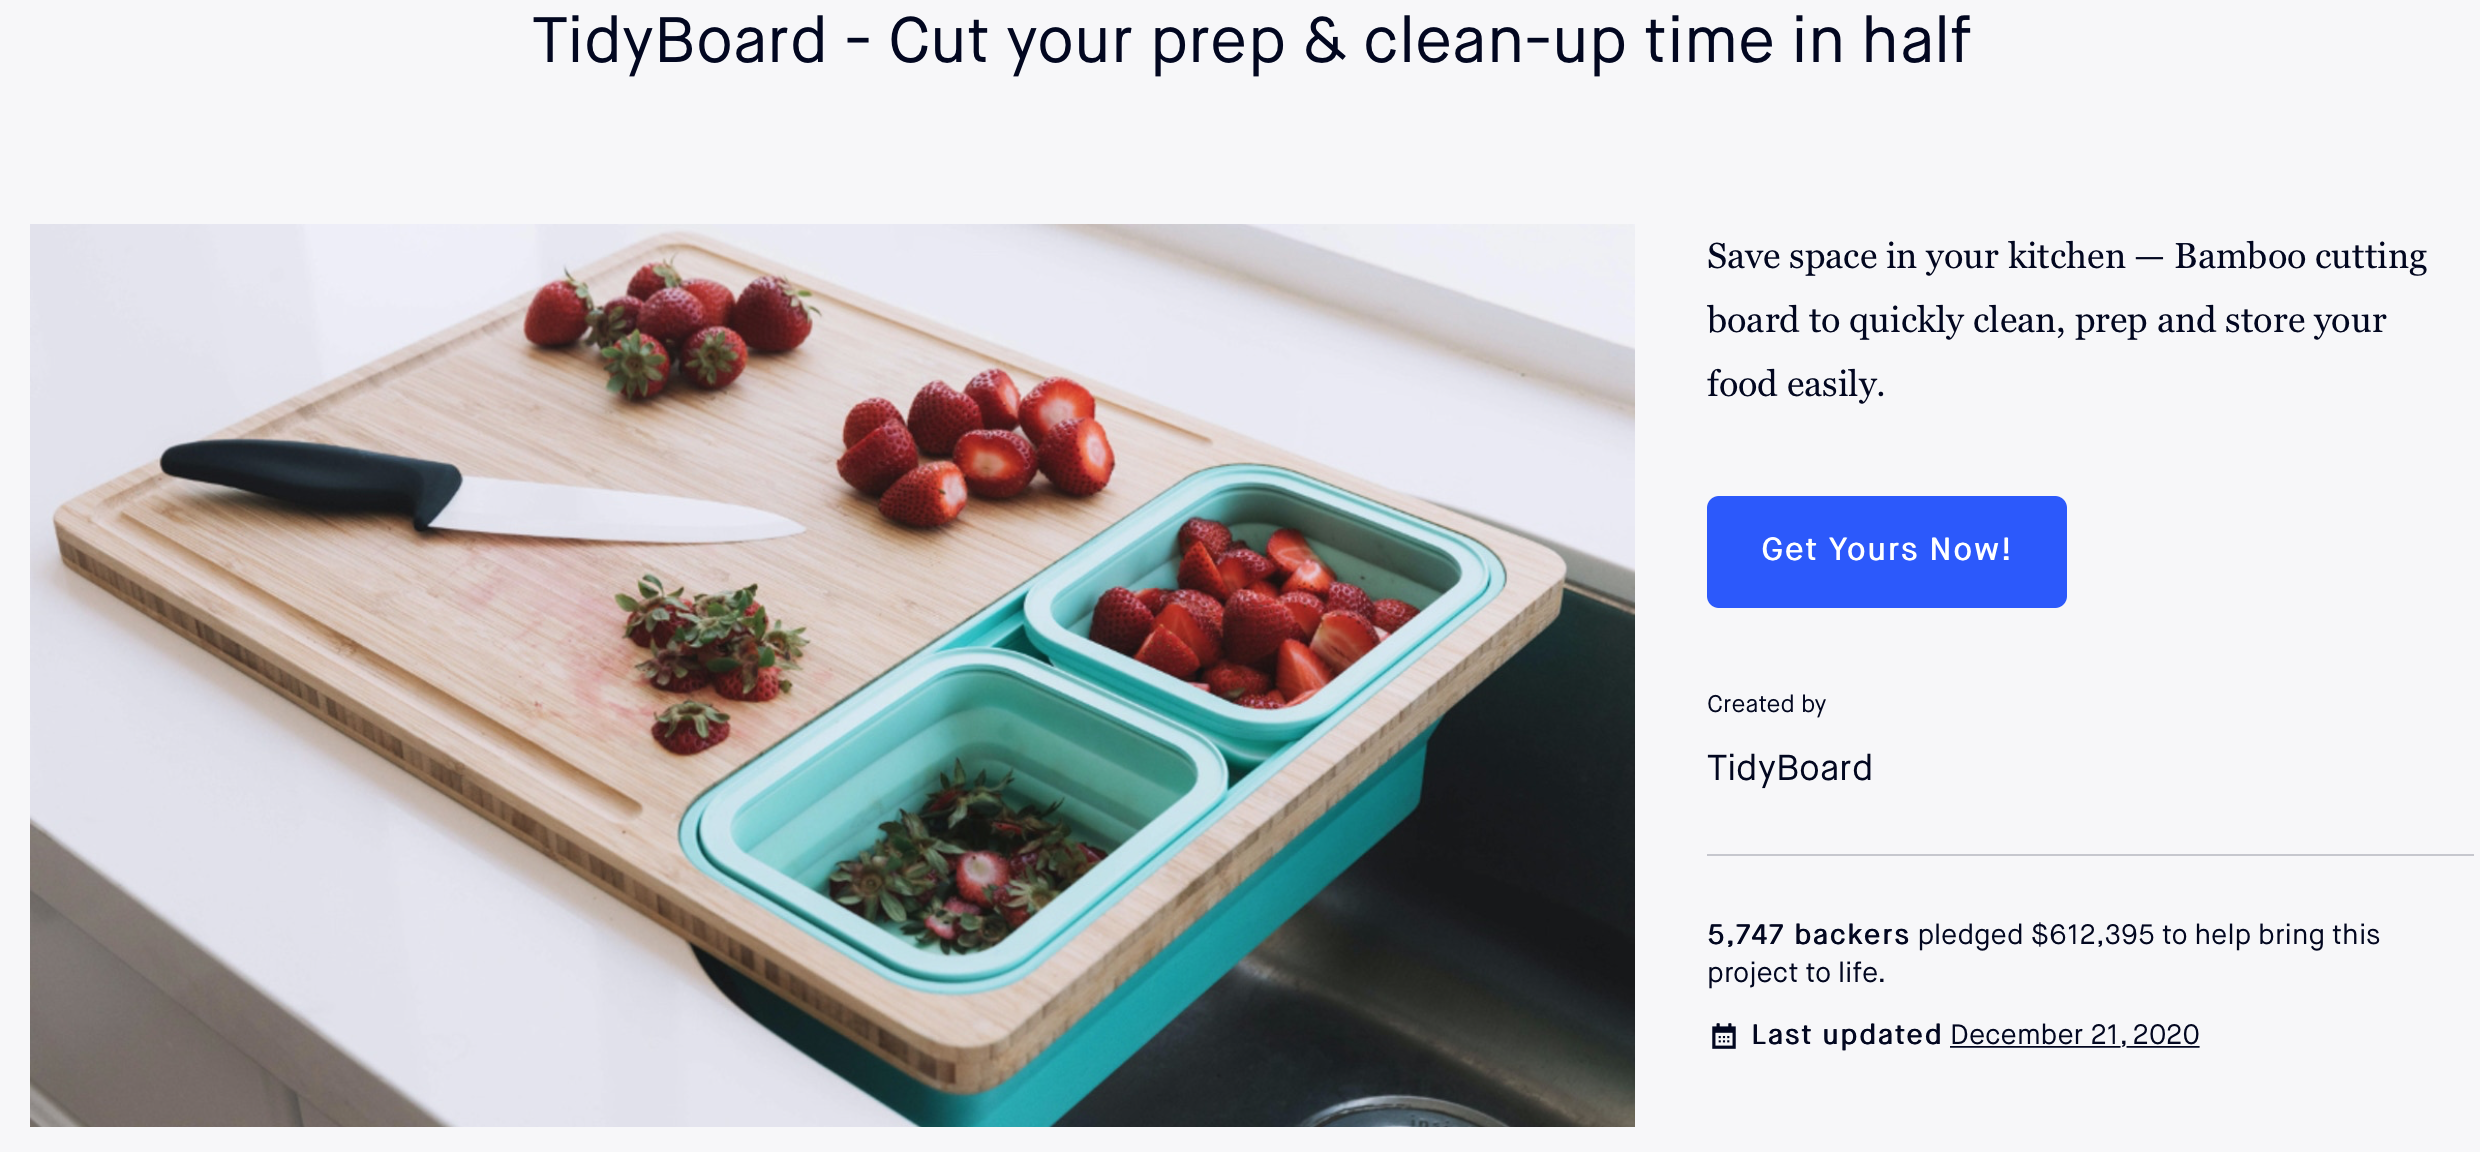 How we raised $612,395 for TidyBoard on Kickstarter [CASE STUDY]